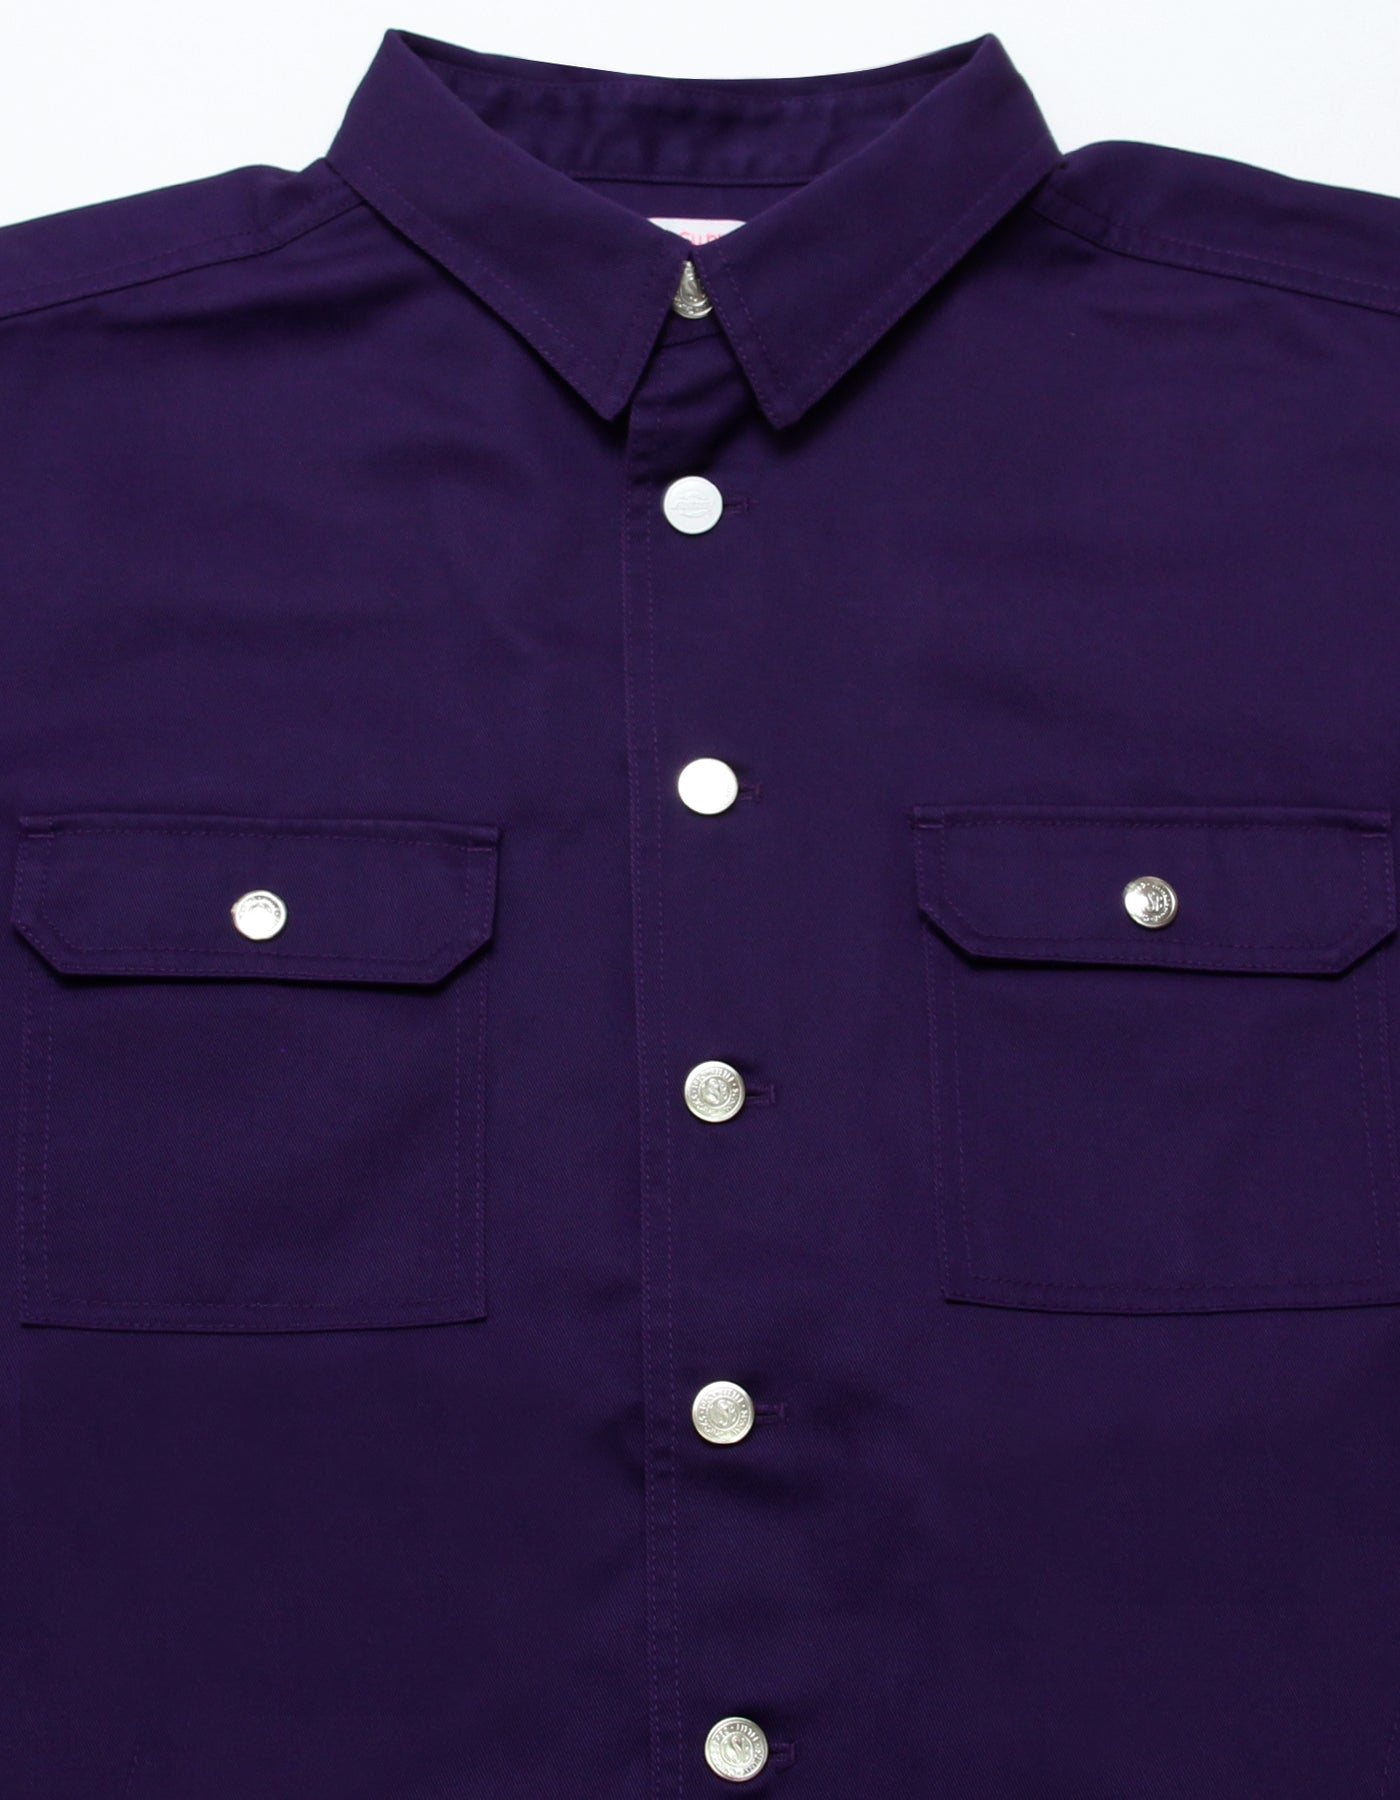 Dickes x little sunny bite shirts jacket / PURPLE